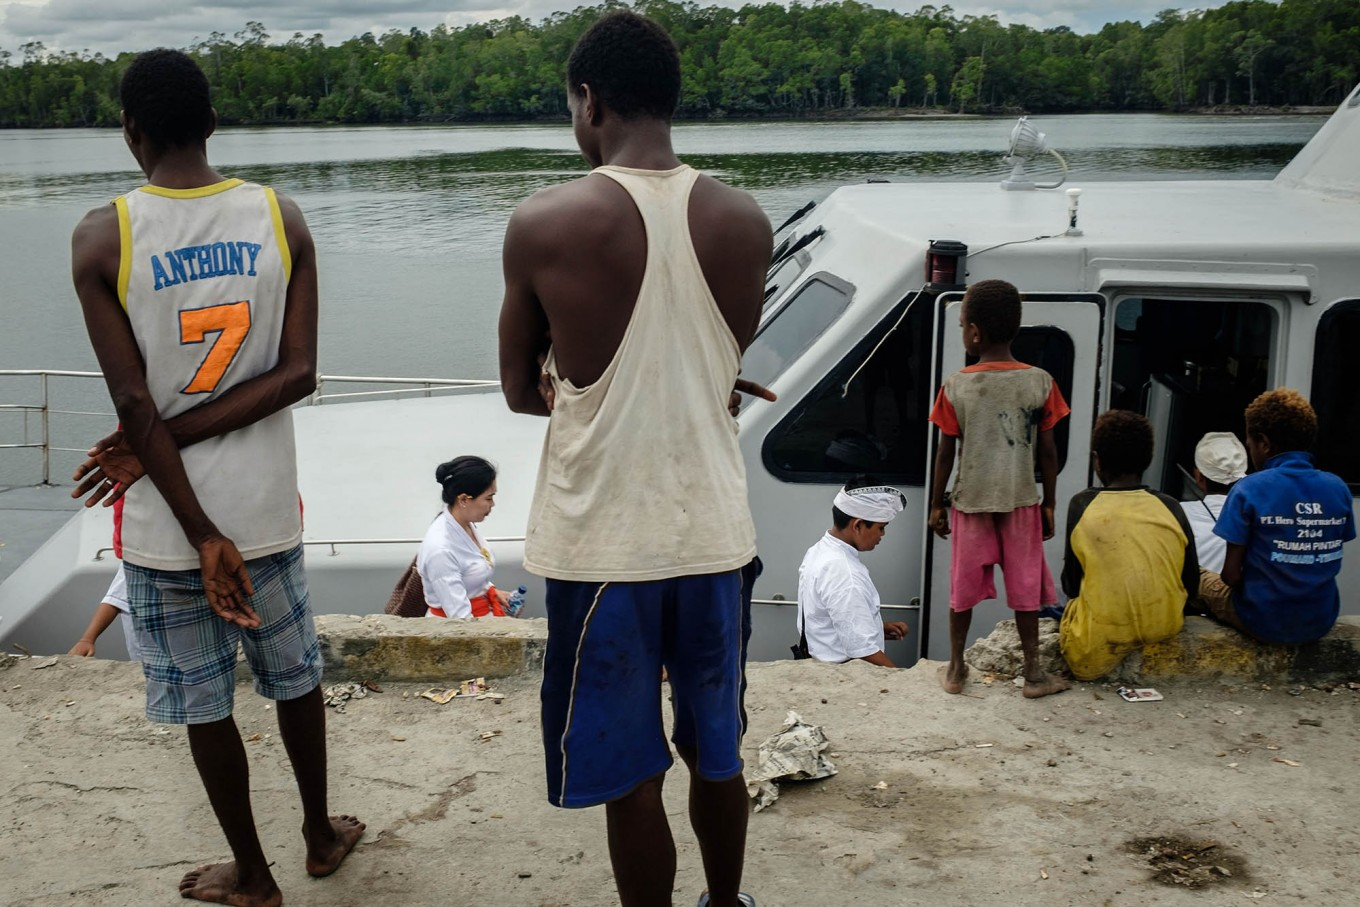 Papuans watch several Balinese Hindus boarding a boat to collect sea water to be used in Melasti rituals. JP/Vembri Waluyas